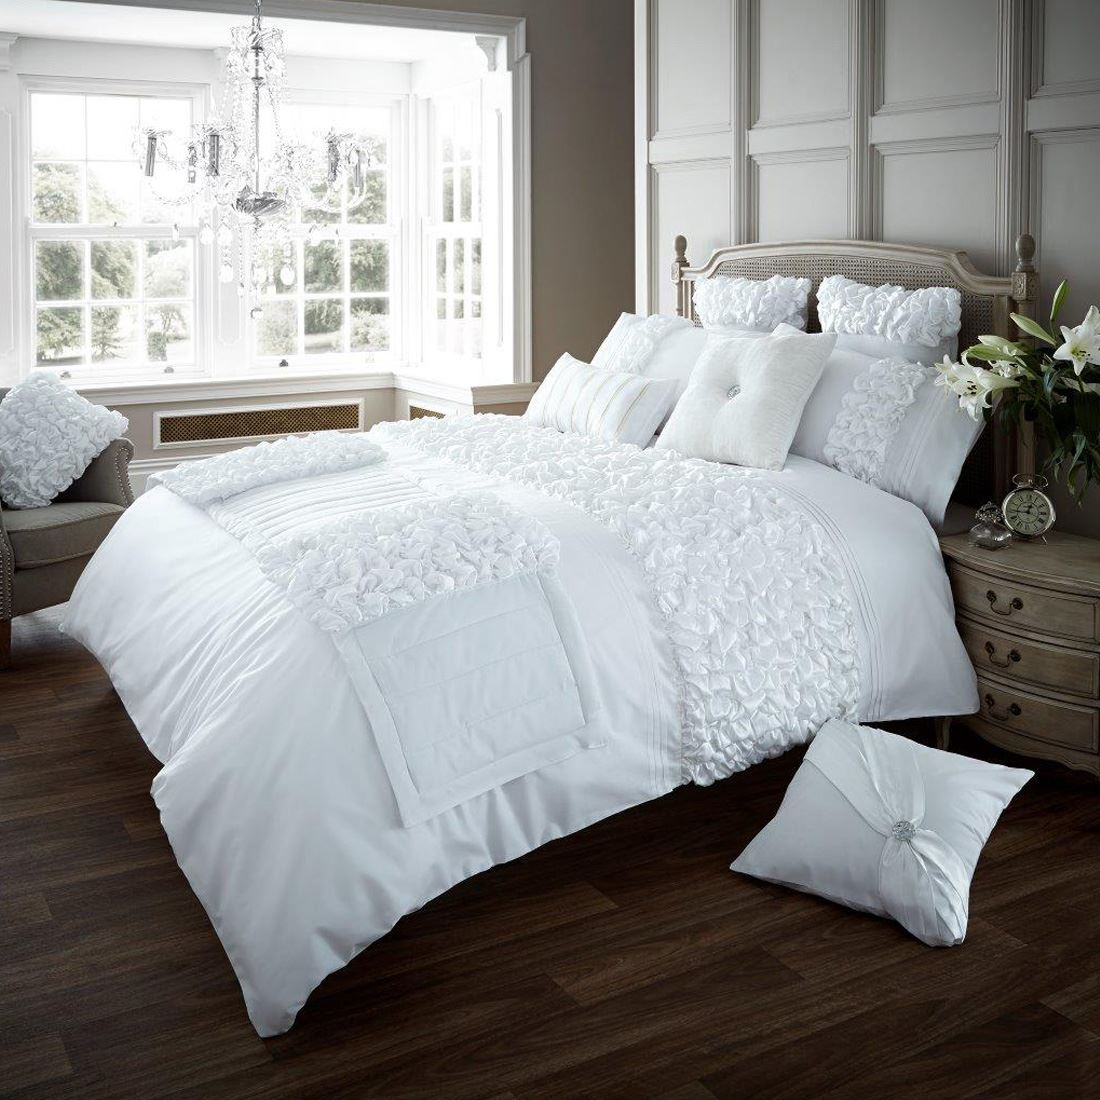 Verina duvet cover with pillowcase quilt cover bedding set - All in one double bed ...